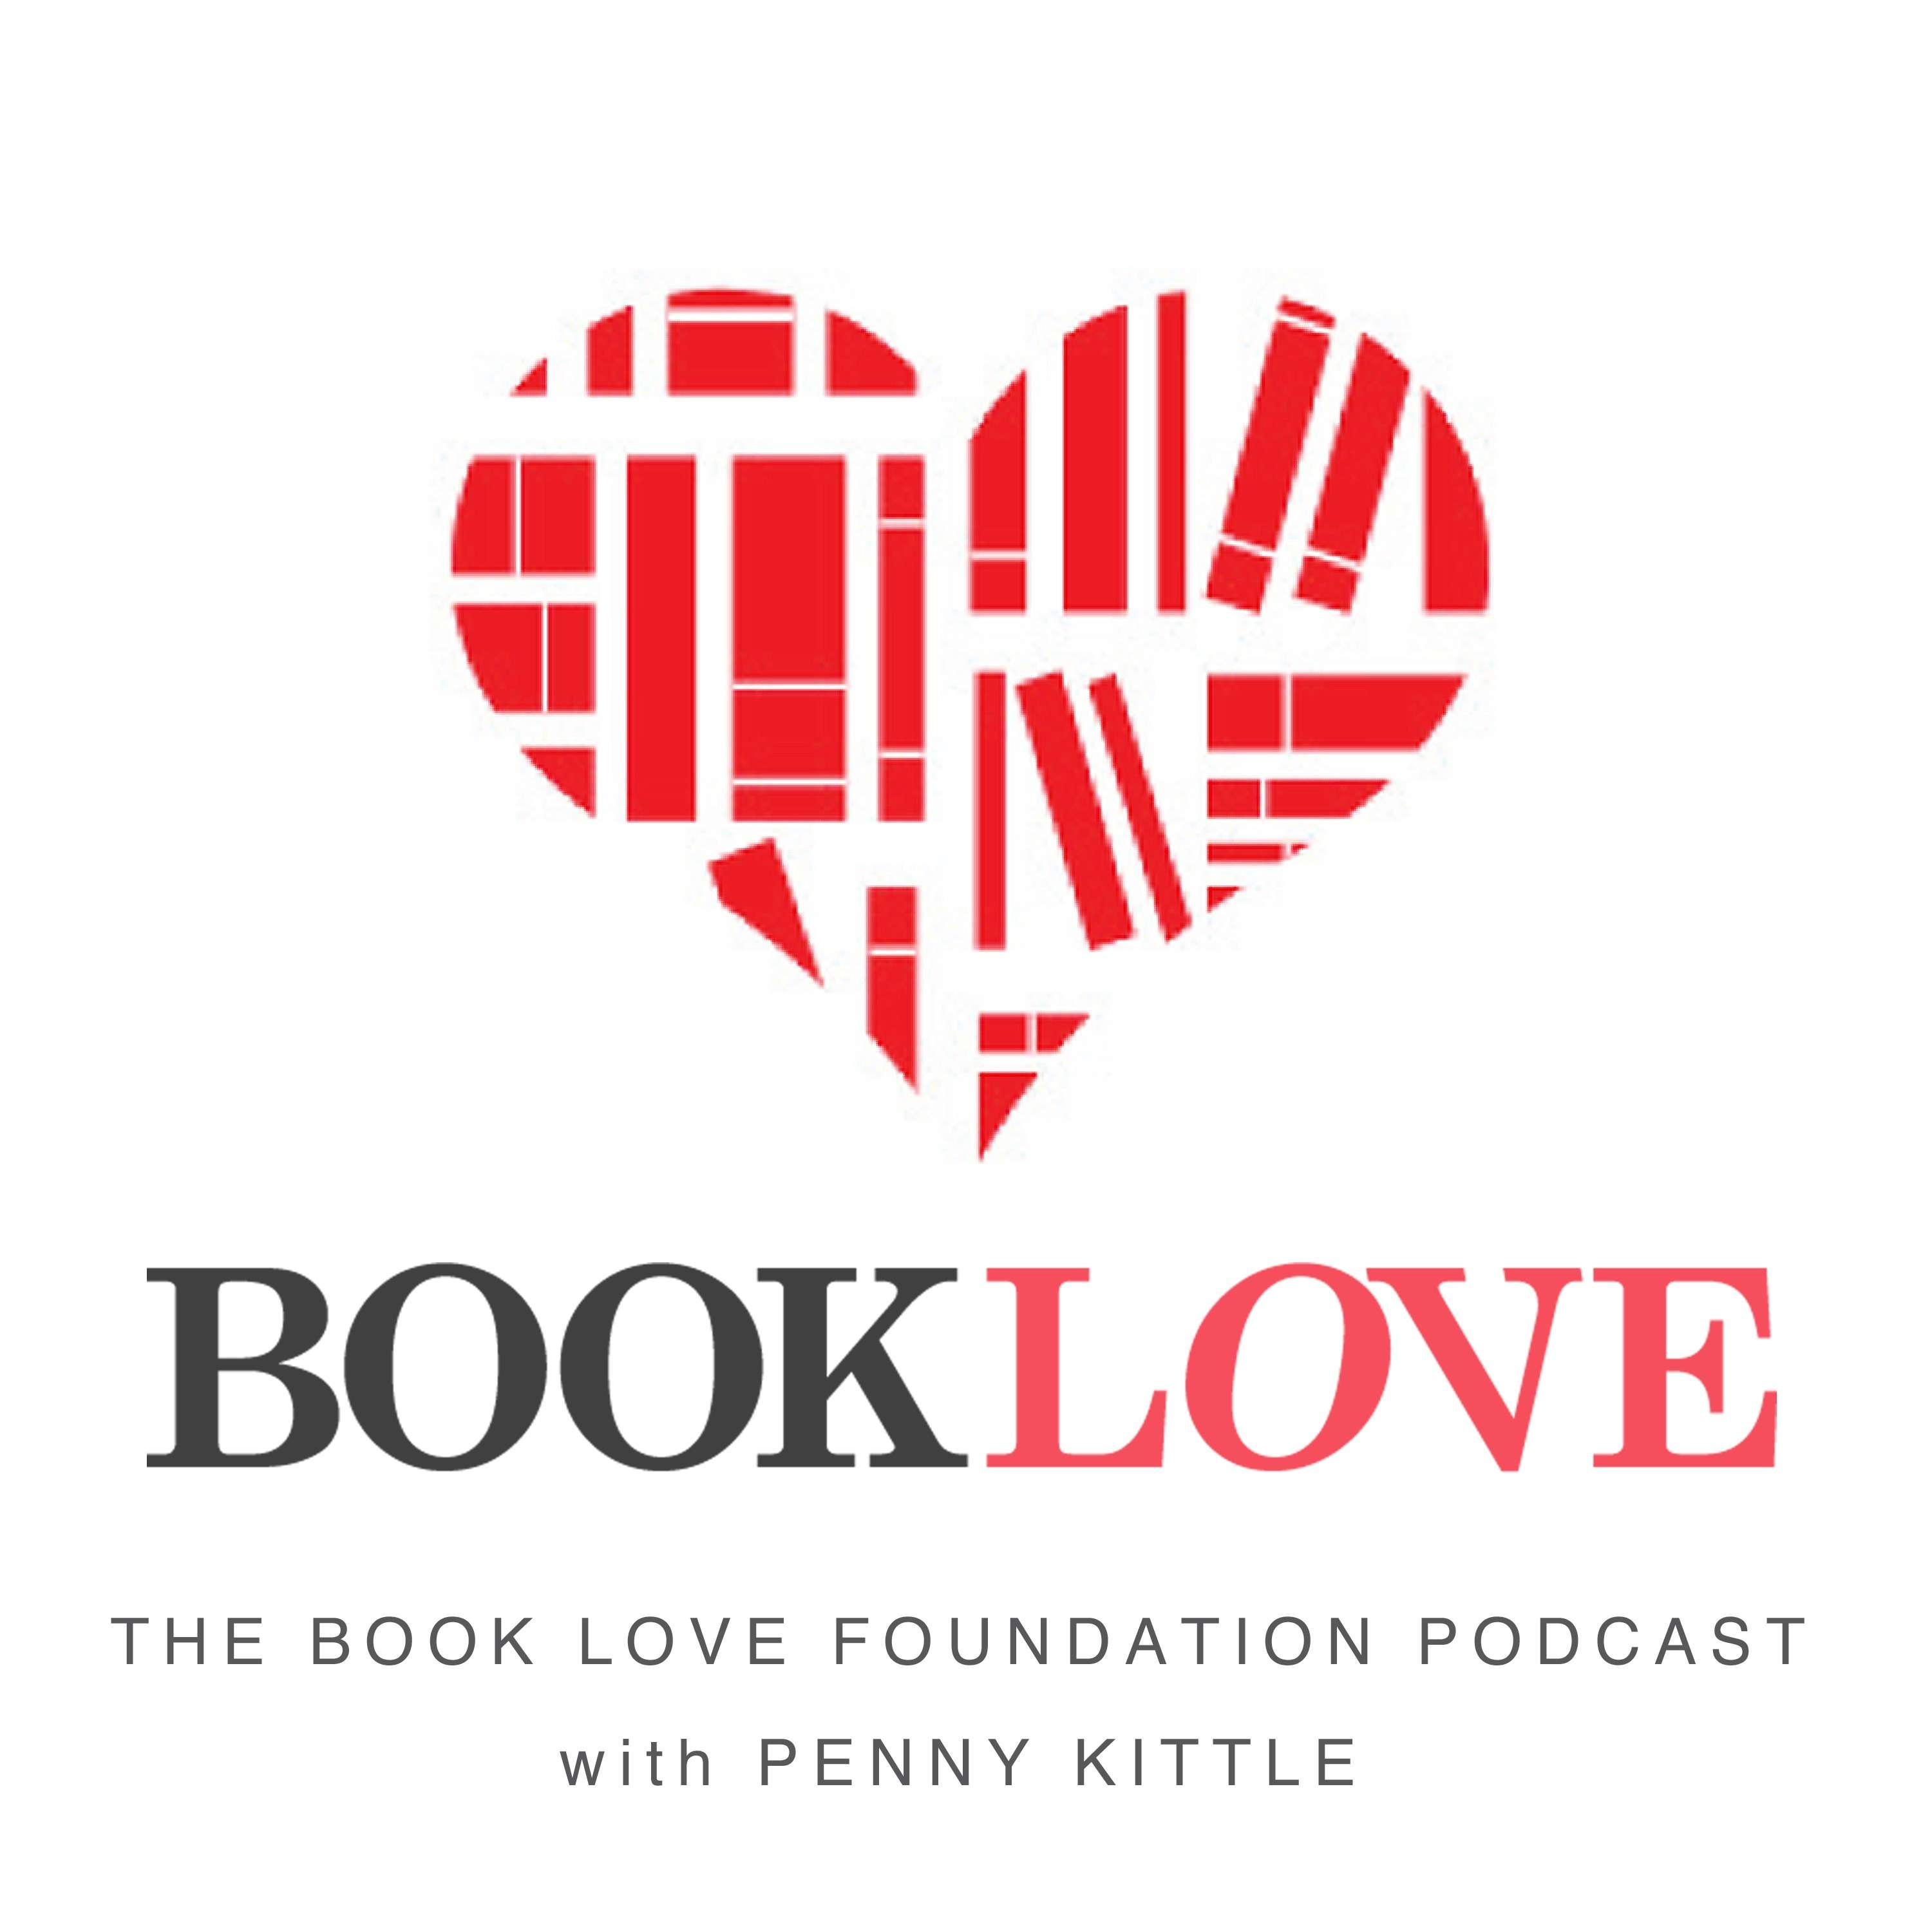 A Conversation with John Irving, Part 2. Season 2 Ep. 12 of the Book Love Foundation Podcast